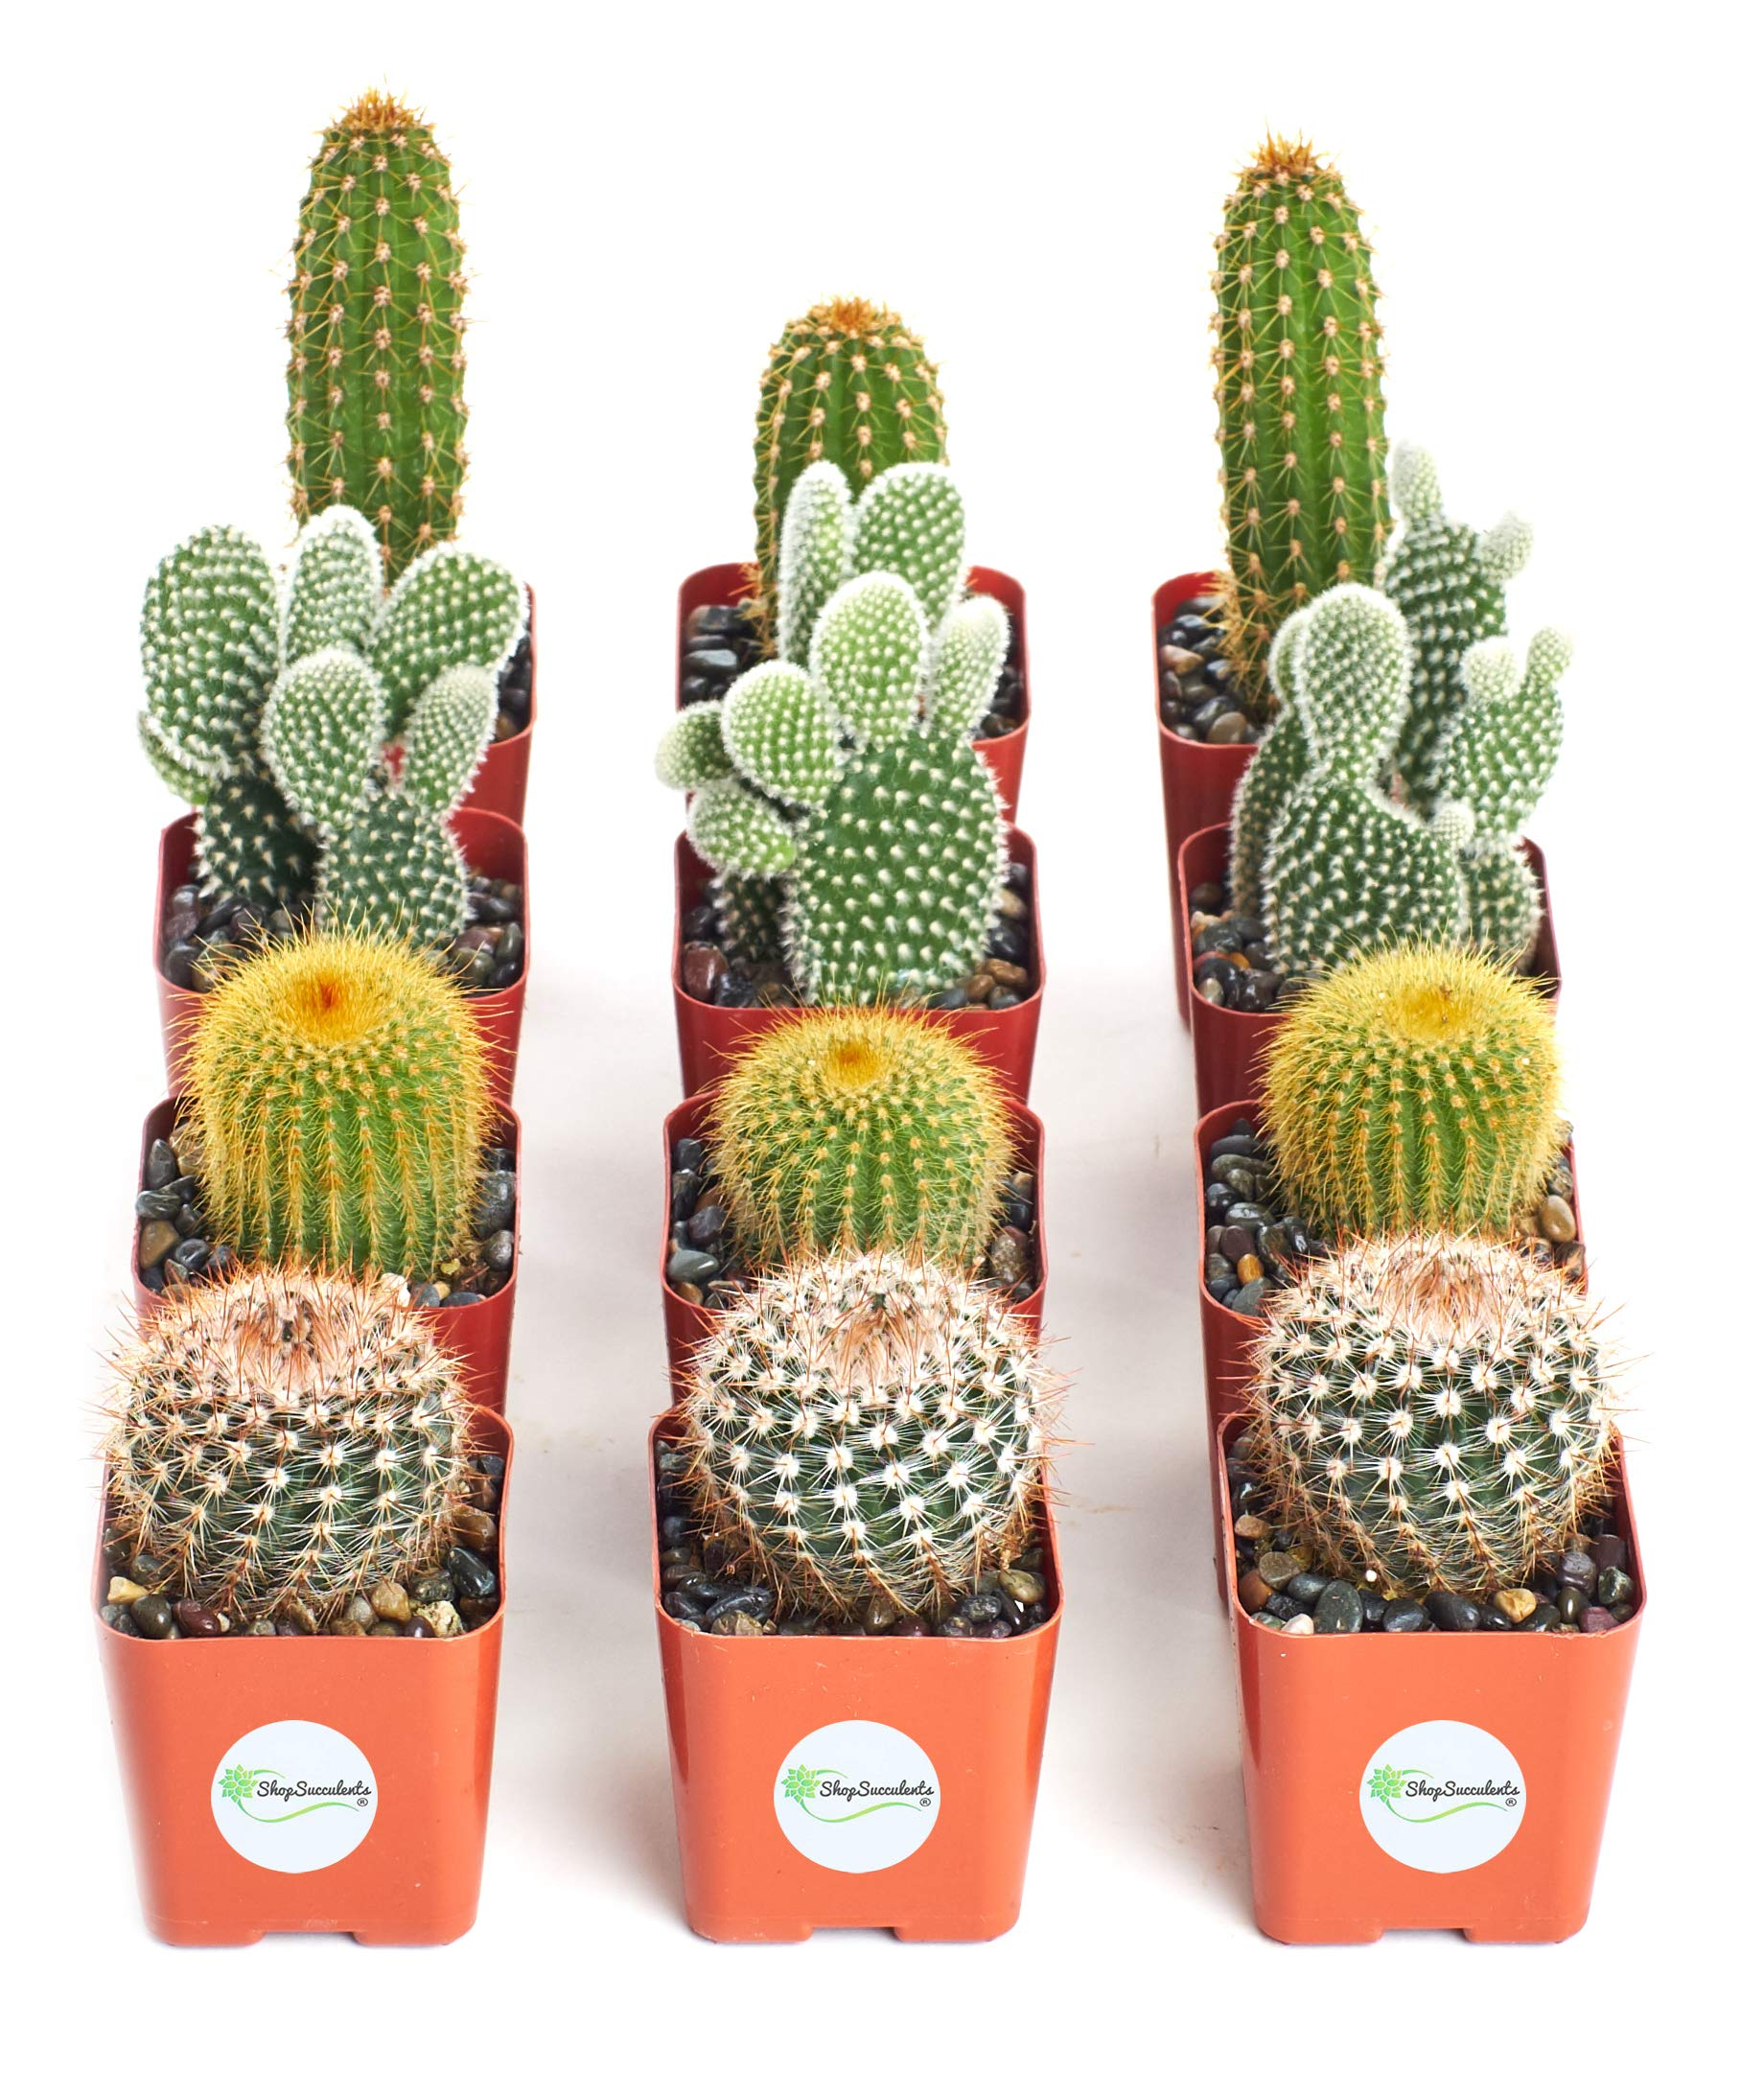 Shop Succulents | Cool Cactus Collection of Live Succulent Plants, Hand Selected Variety Pack of Cacti | Collection of 12 in 2'' pots by Shop Succulents